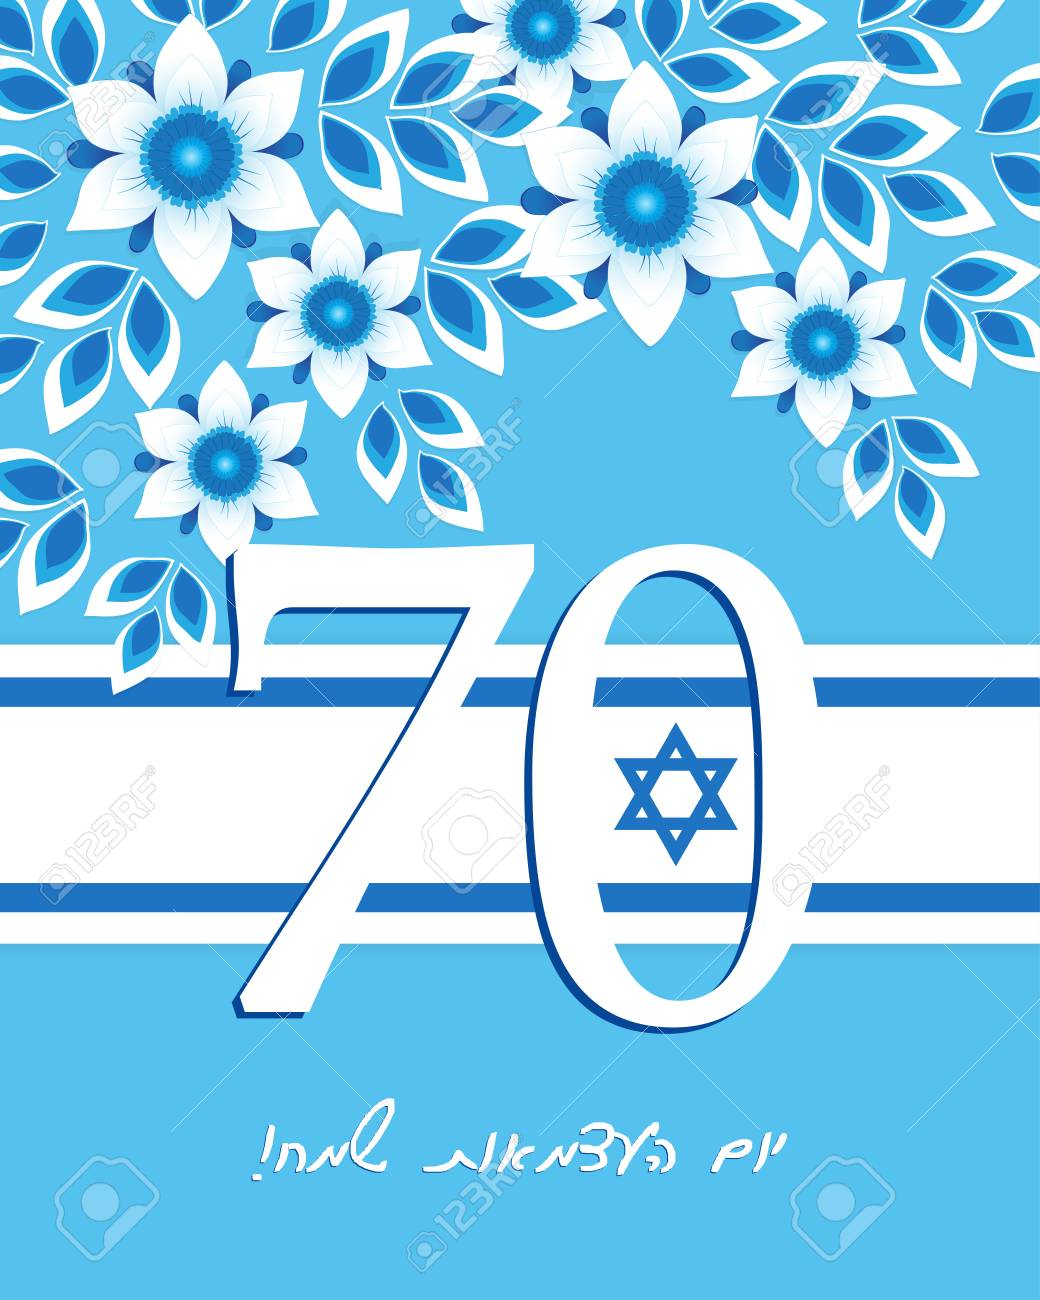 Israel independence day 70 years anniversary jewish holiday israel independence day 70 years anniversary jewish holiday greeting card with flag blue and m4hsunfo Image collections